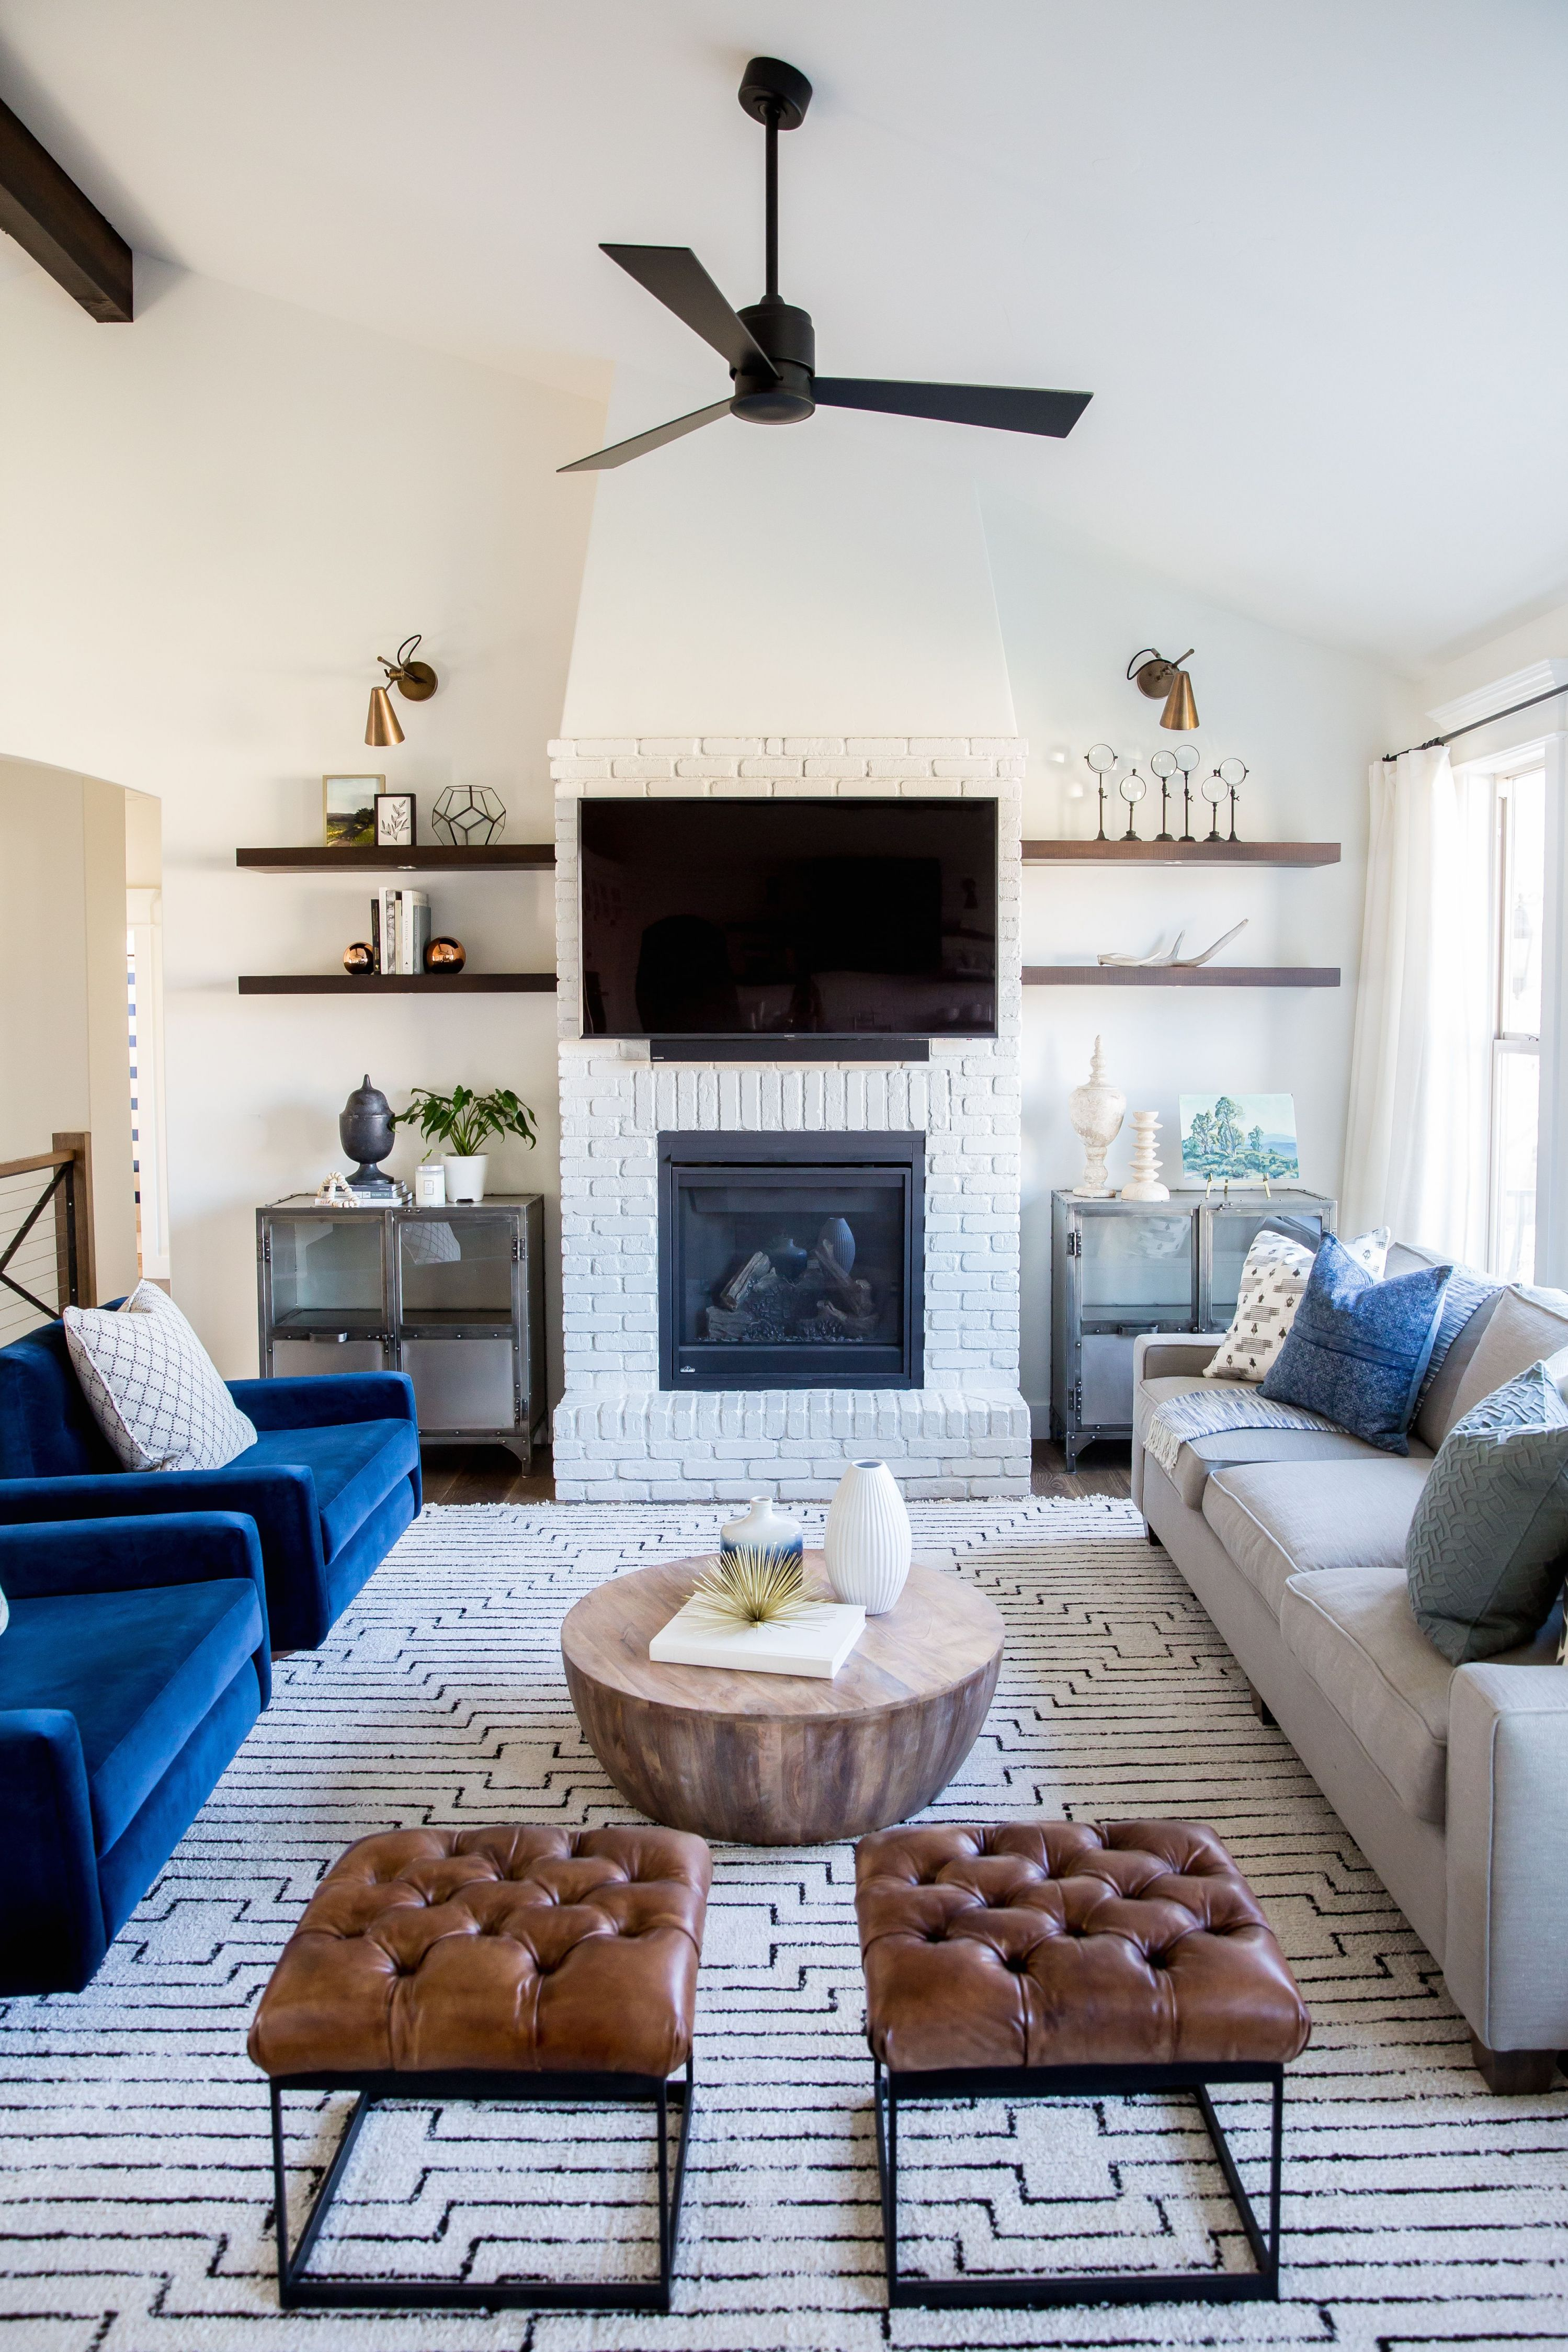 20+ Living Room With Fireplace That Will Warm You All Winter | Dream with Small Living Room Furniture